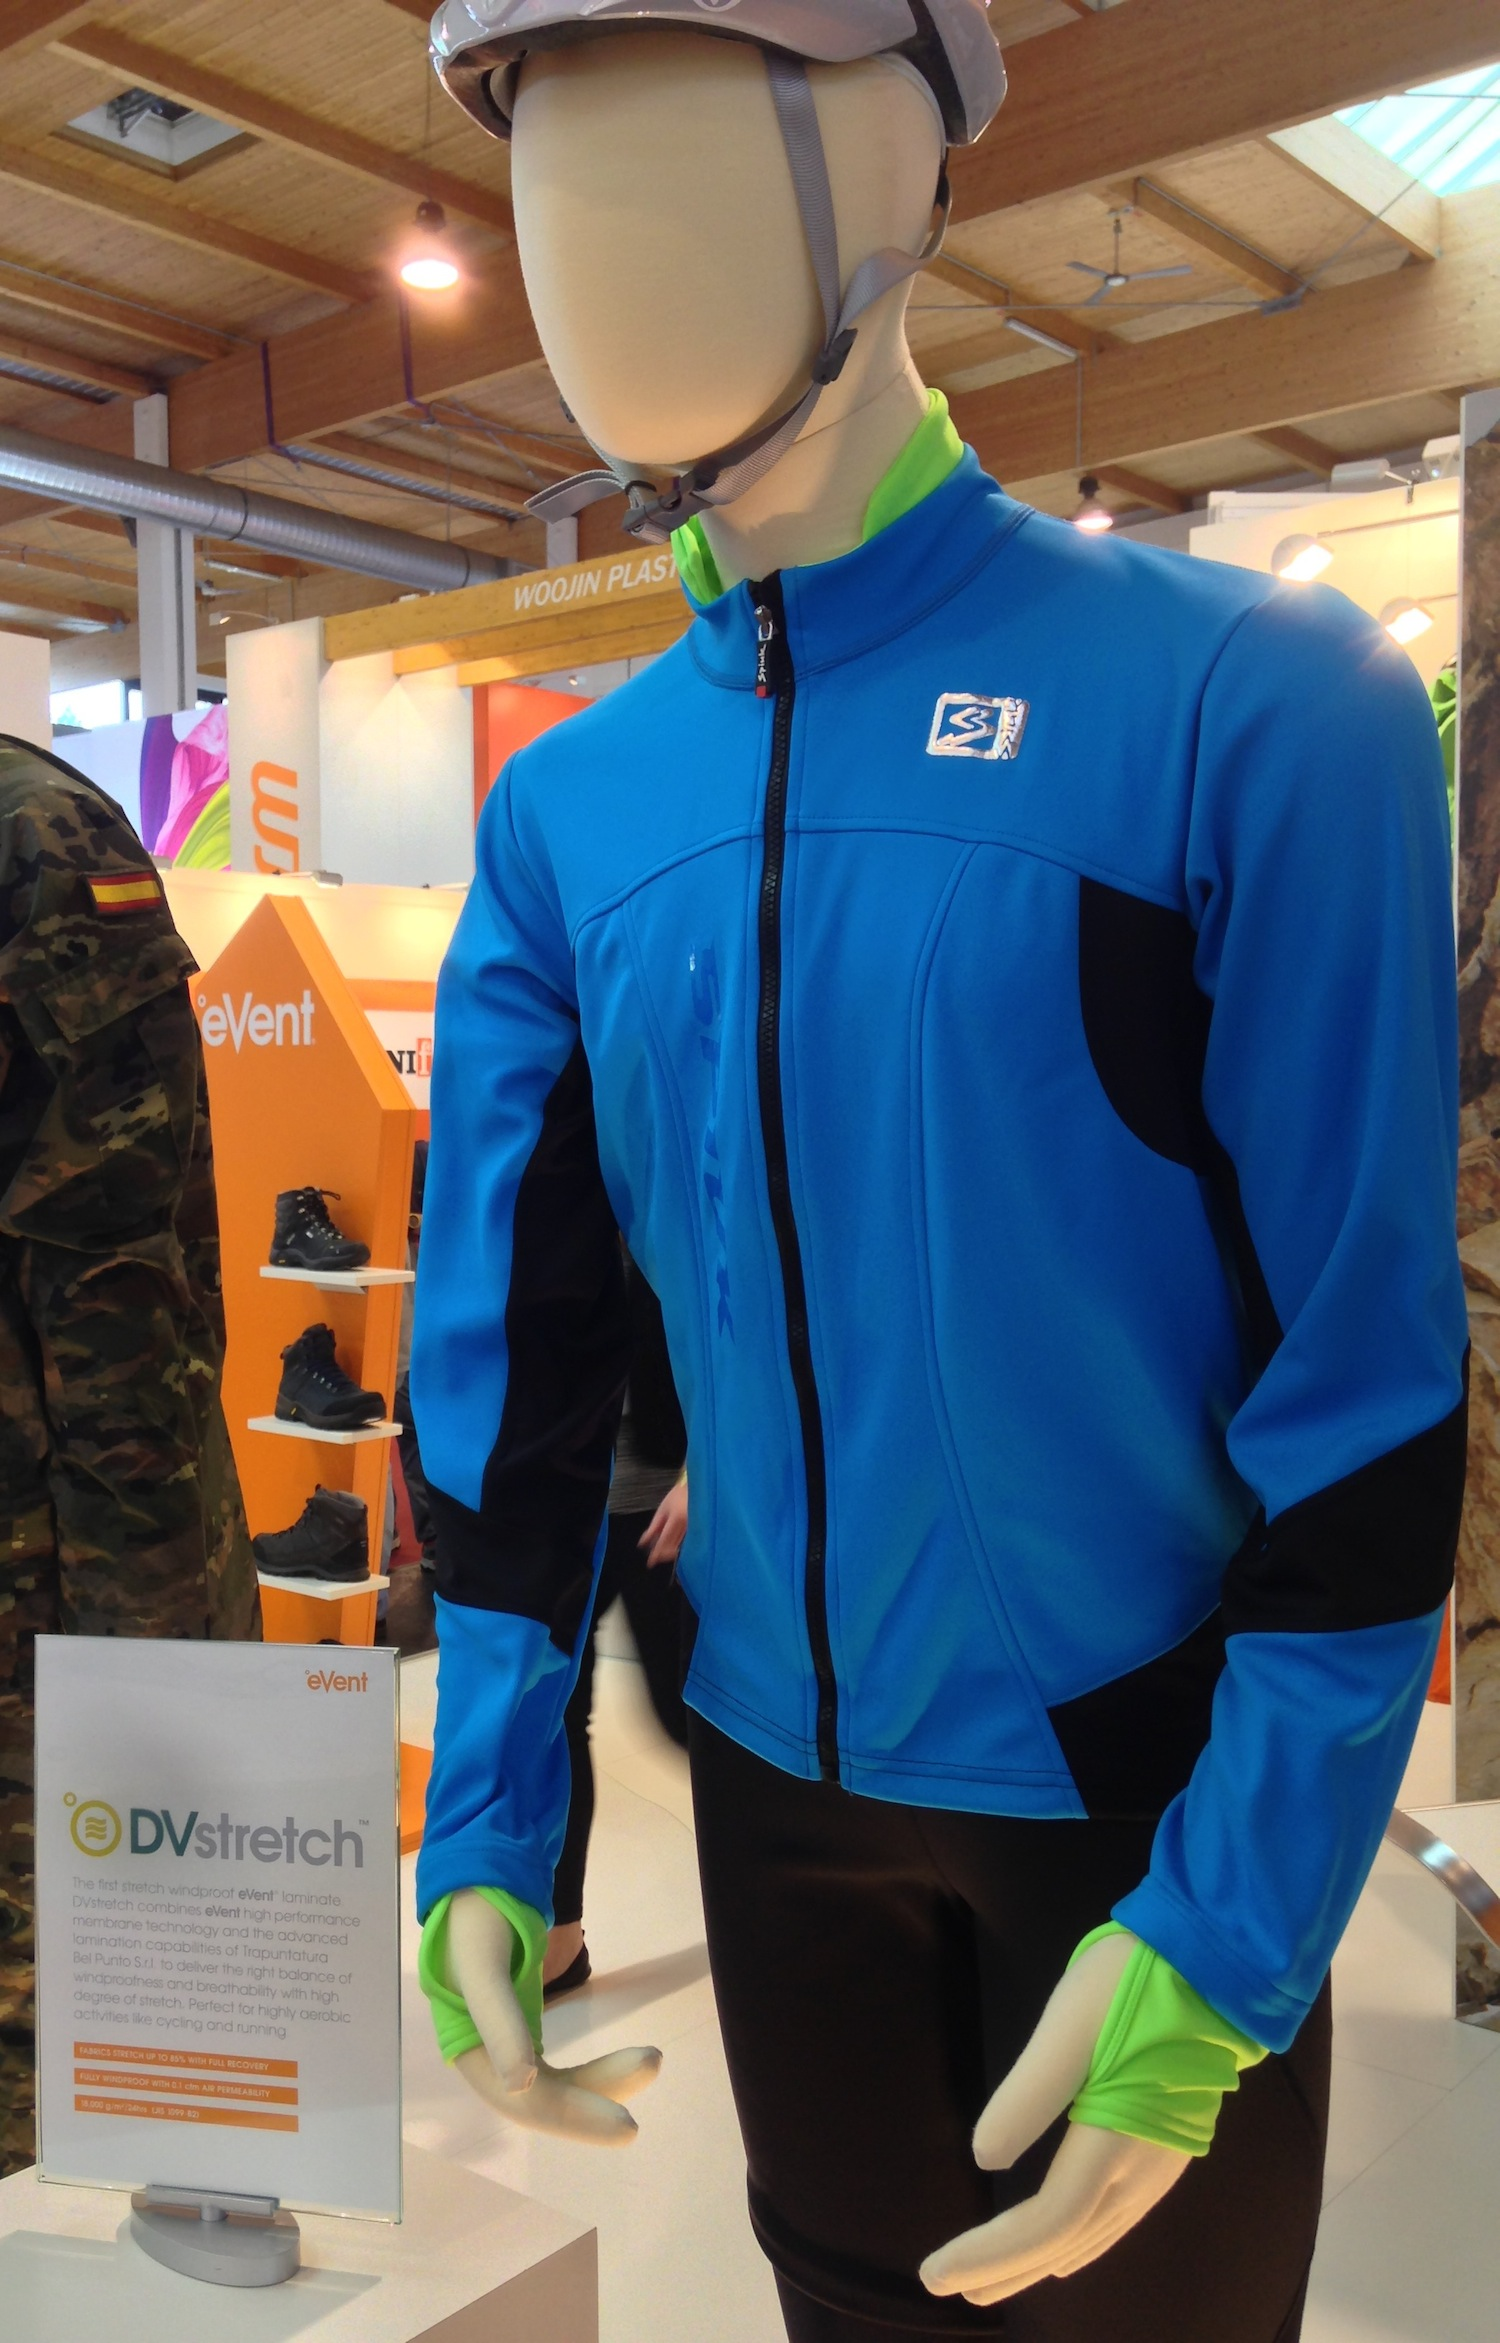 SPIUK Elite Winter Jacket with eVent DVStretch. © eVent fabrics